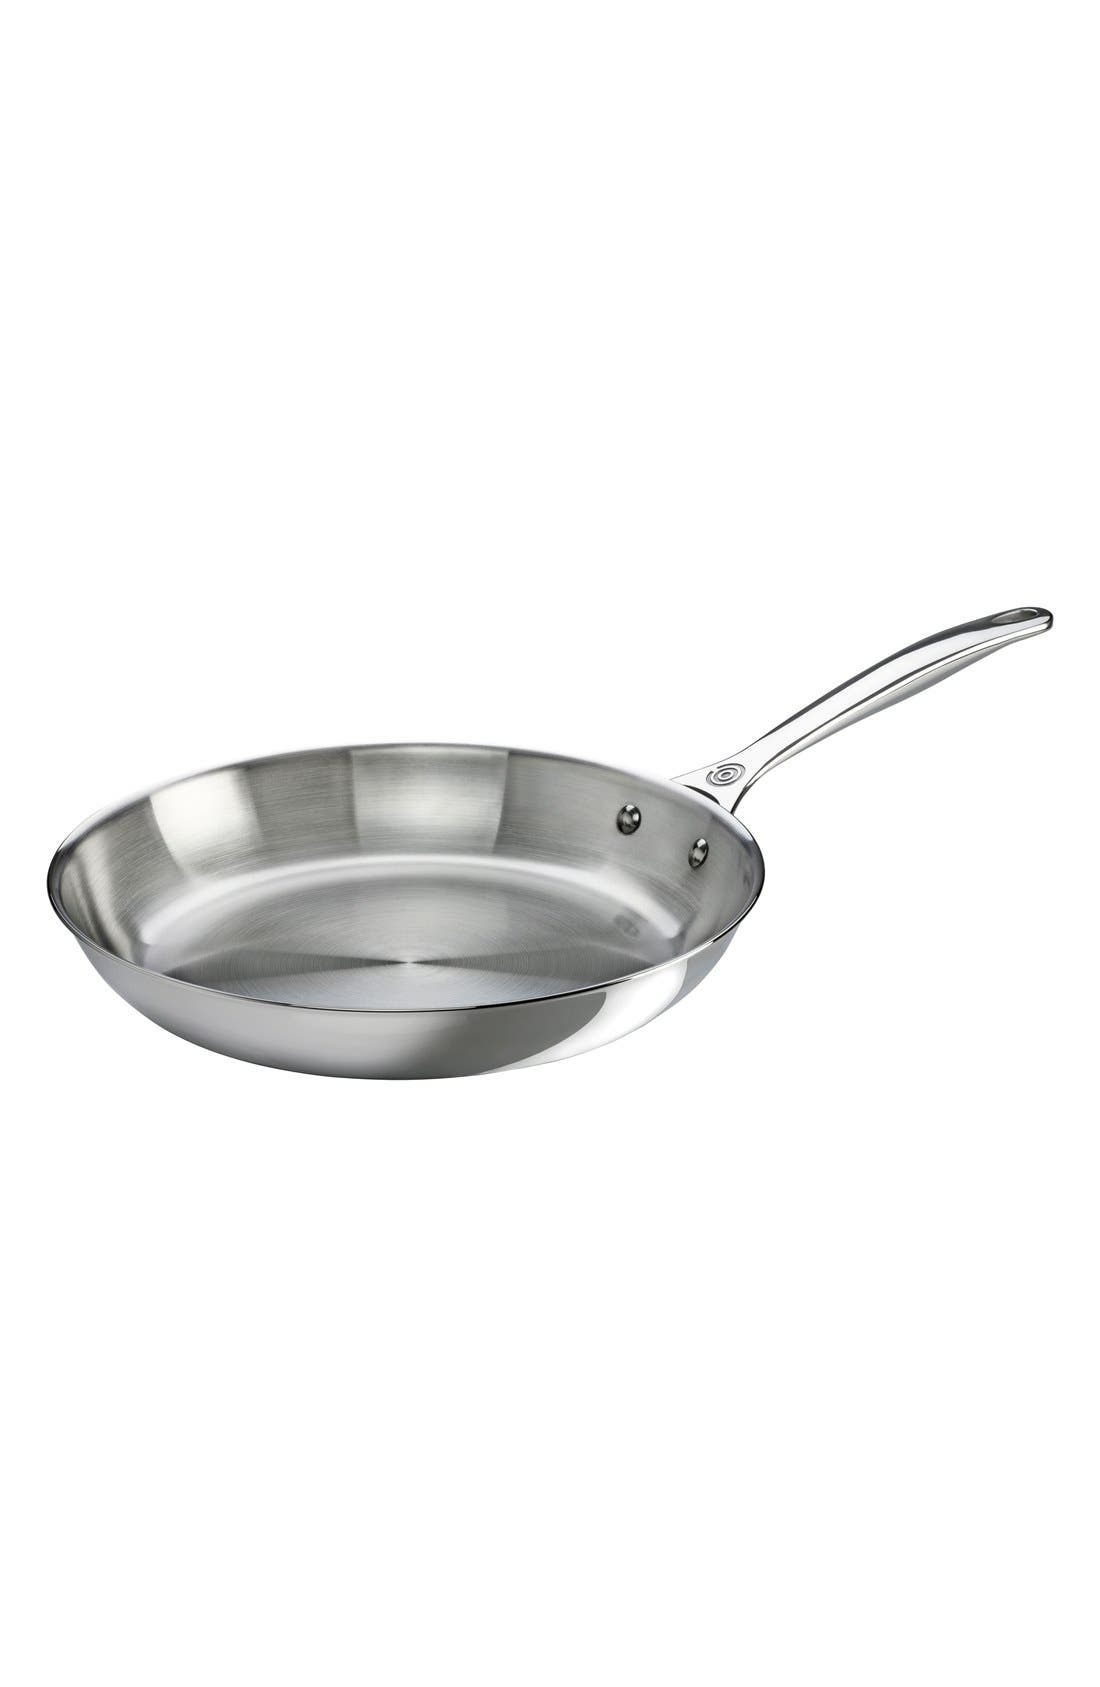 LE CREUSET 12 Inch Stainless Steel Fry Pan